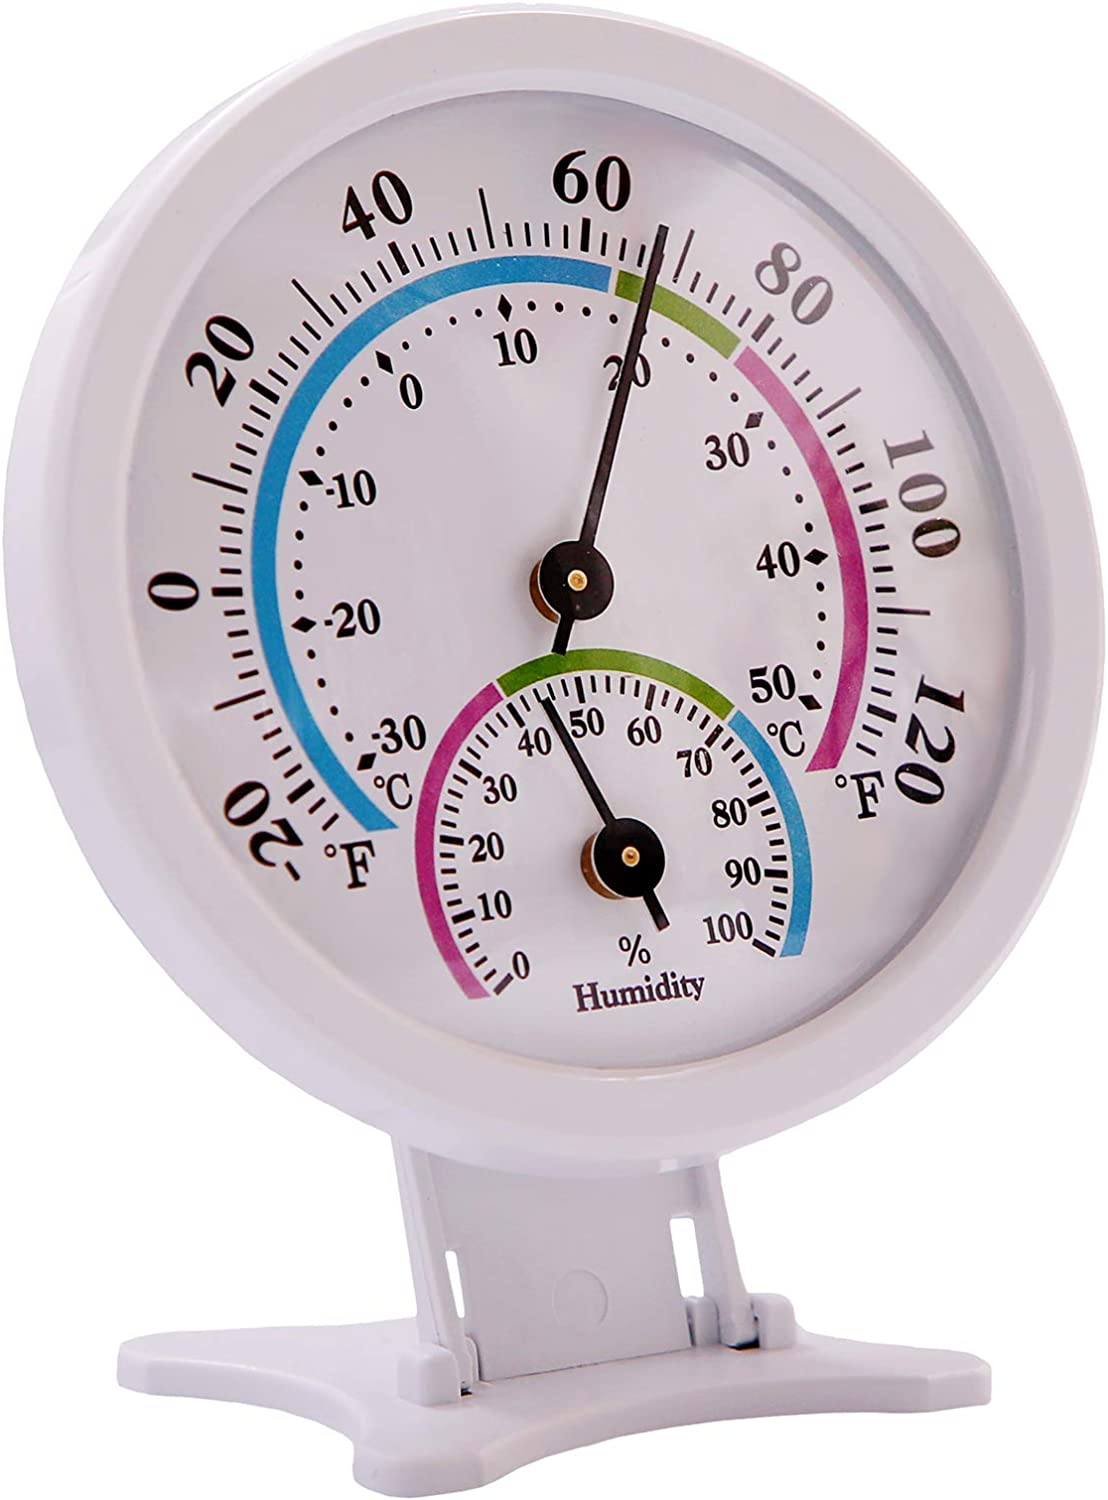 LayscoPro Mini Indoor Thermometer Hygrometer Analog 2 in 1 Temperature Humidity Monitor Gauge for Home, Room, Outdoor, Offices, Display Mechanical Diameter 75mm (No Battery Needed)-White